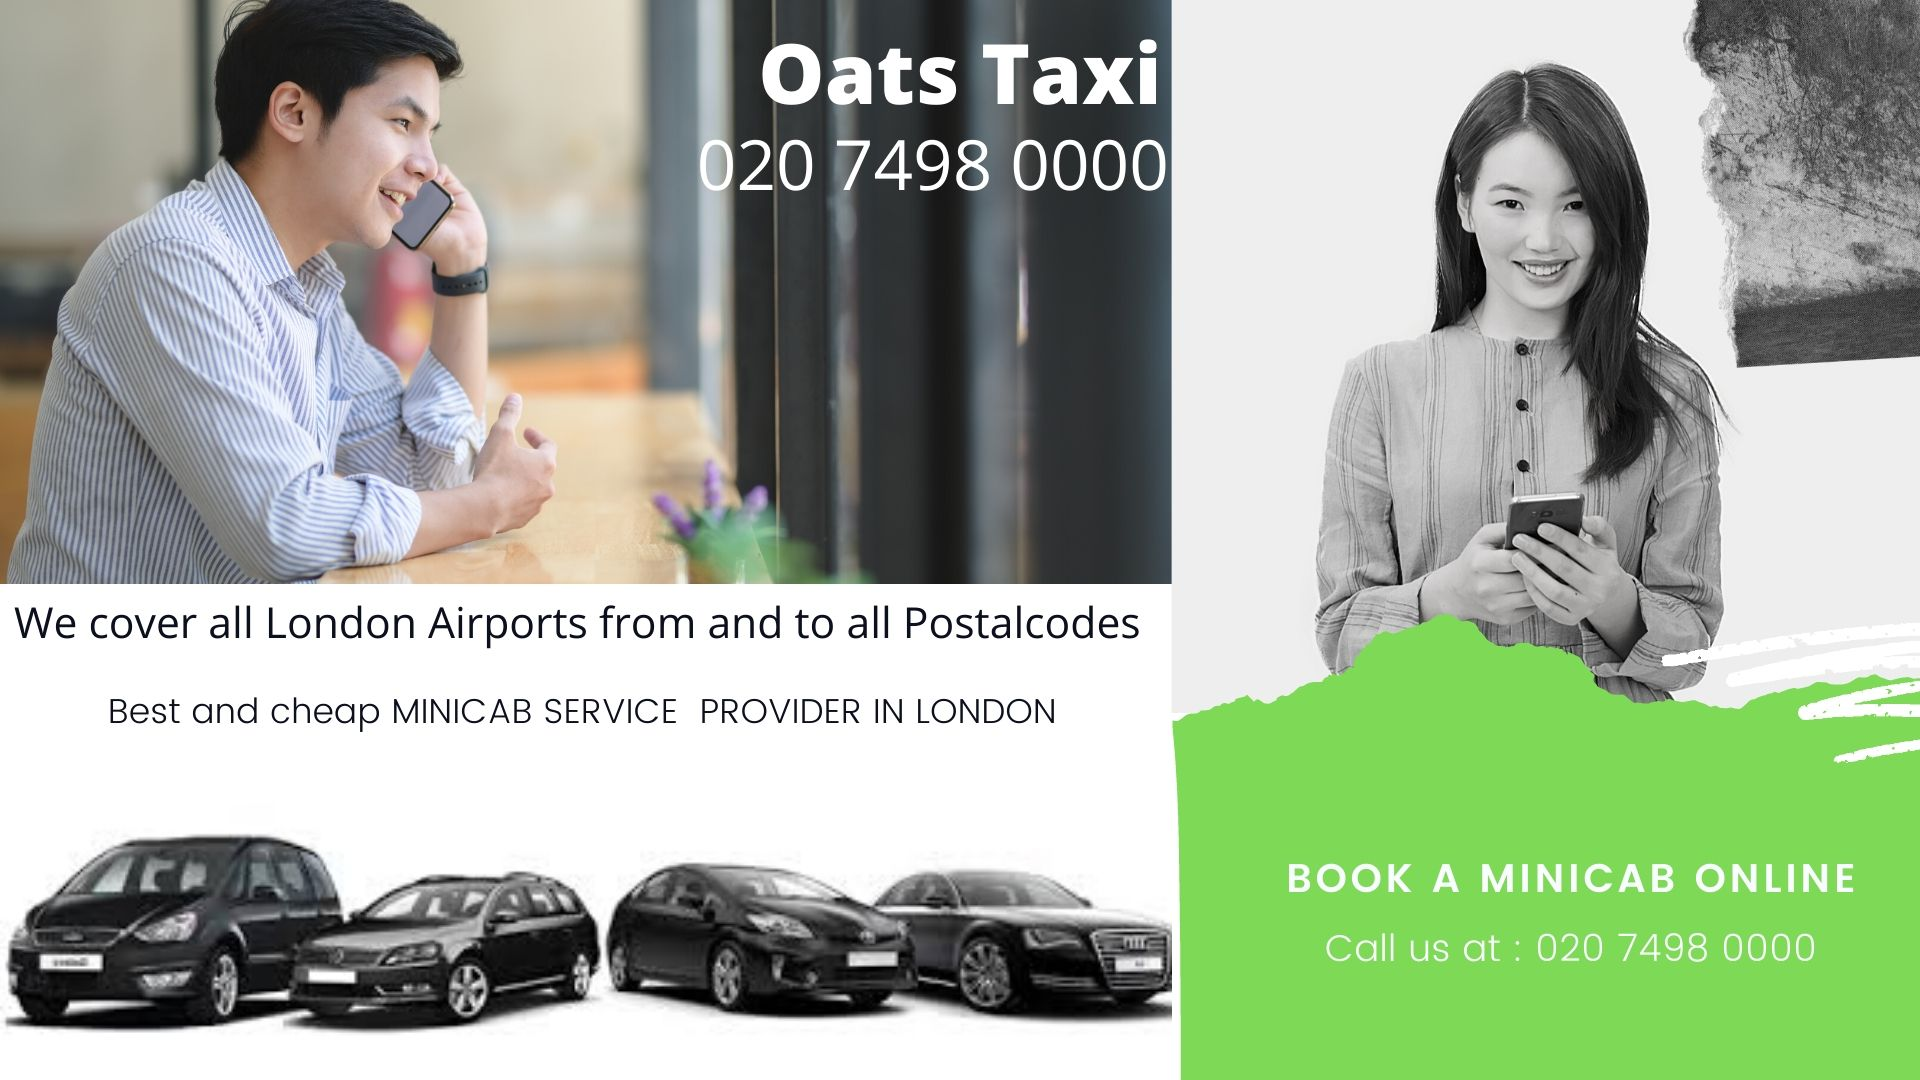 Nearest Minicab Office in South Lambeth | Minicab Gatwick Airport | Call now : 02074980000